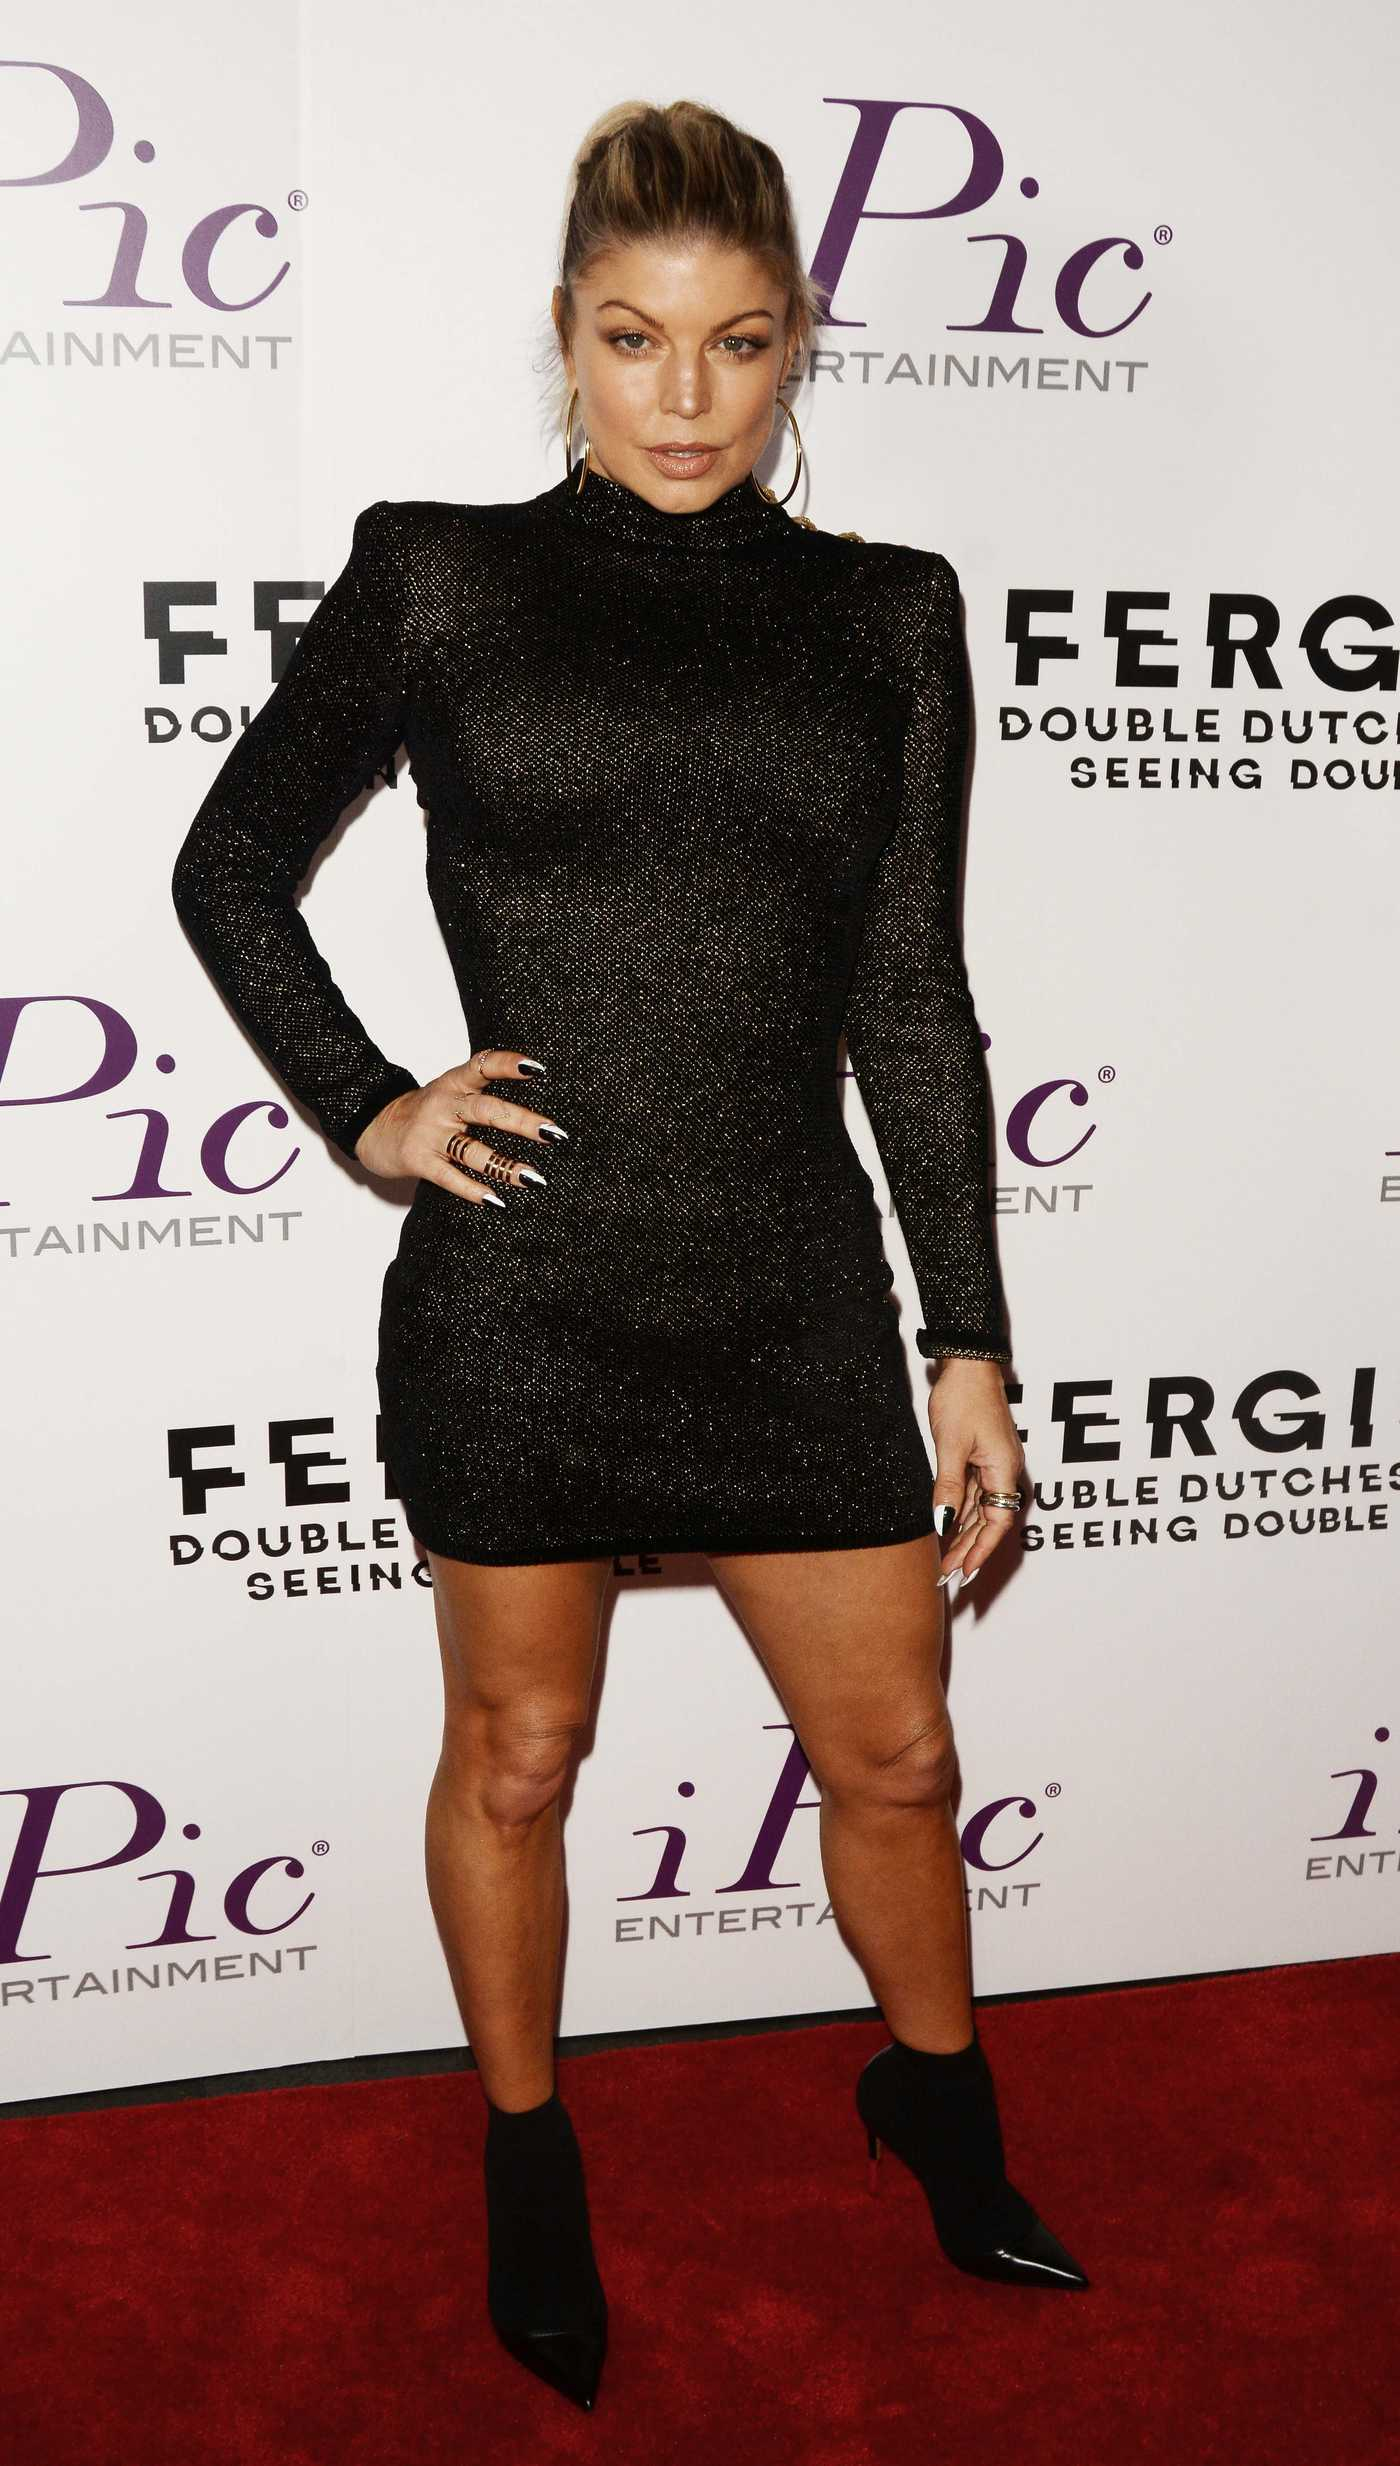 Fergie at the Double Dutchess Visual Album Launch in New York 09/20/2017